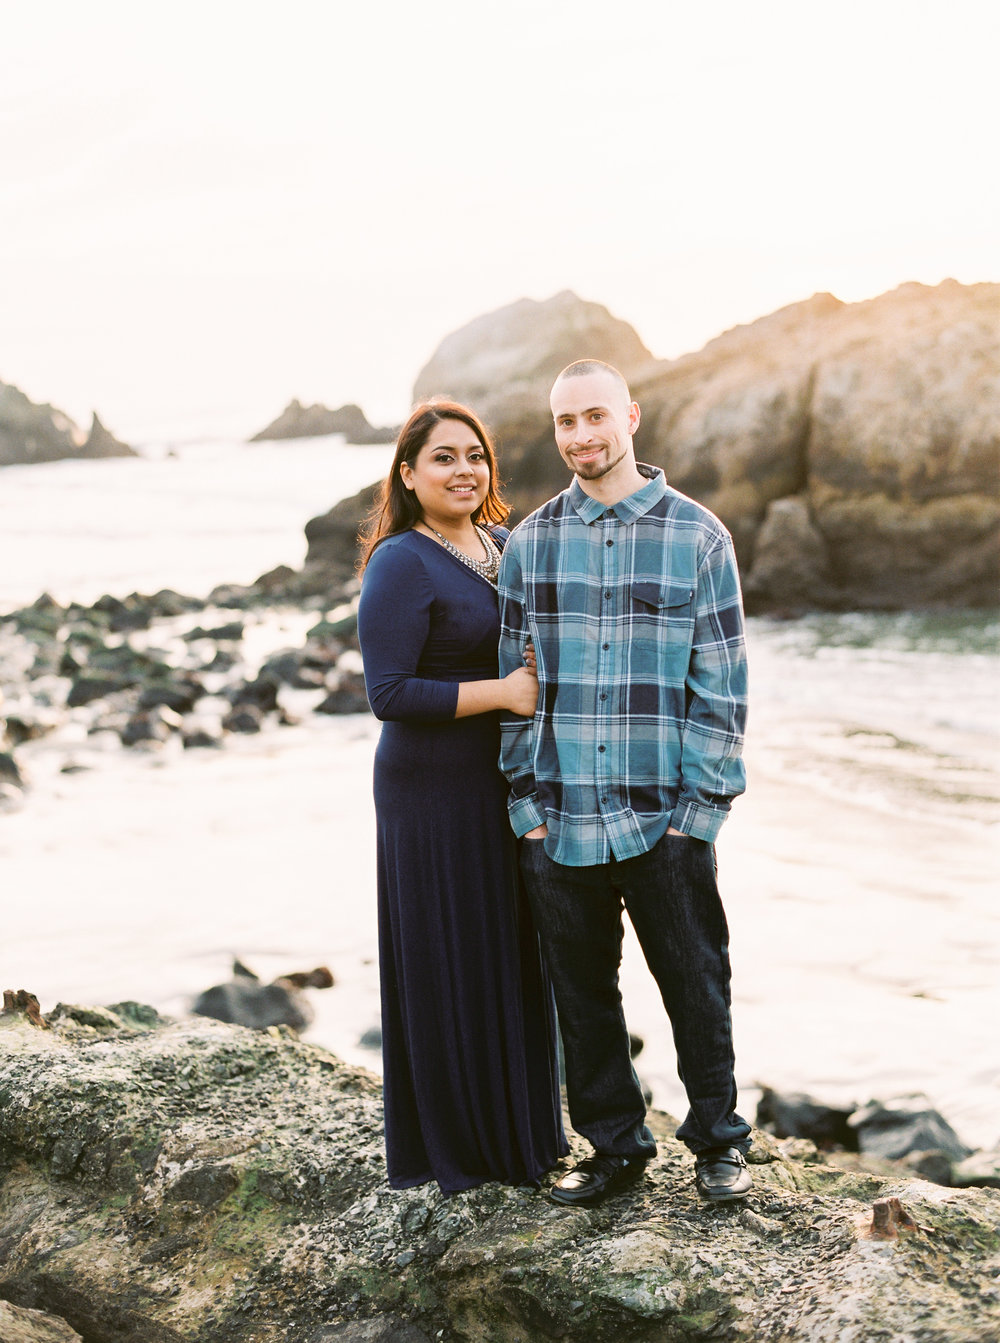 sutro-baths-engagement-session-81.jpg